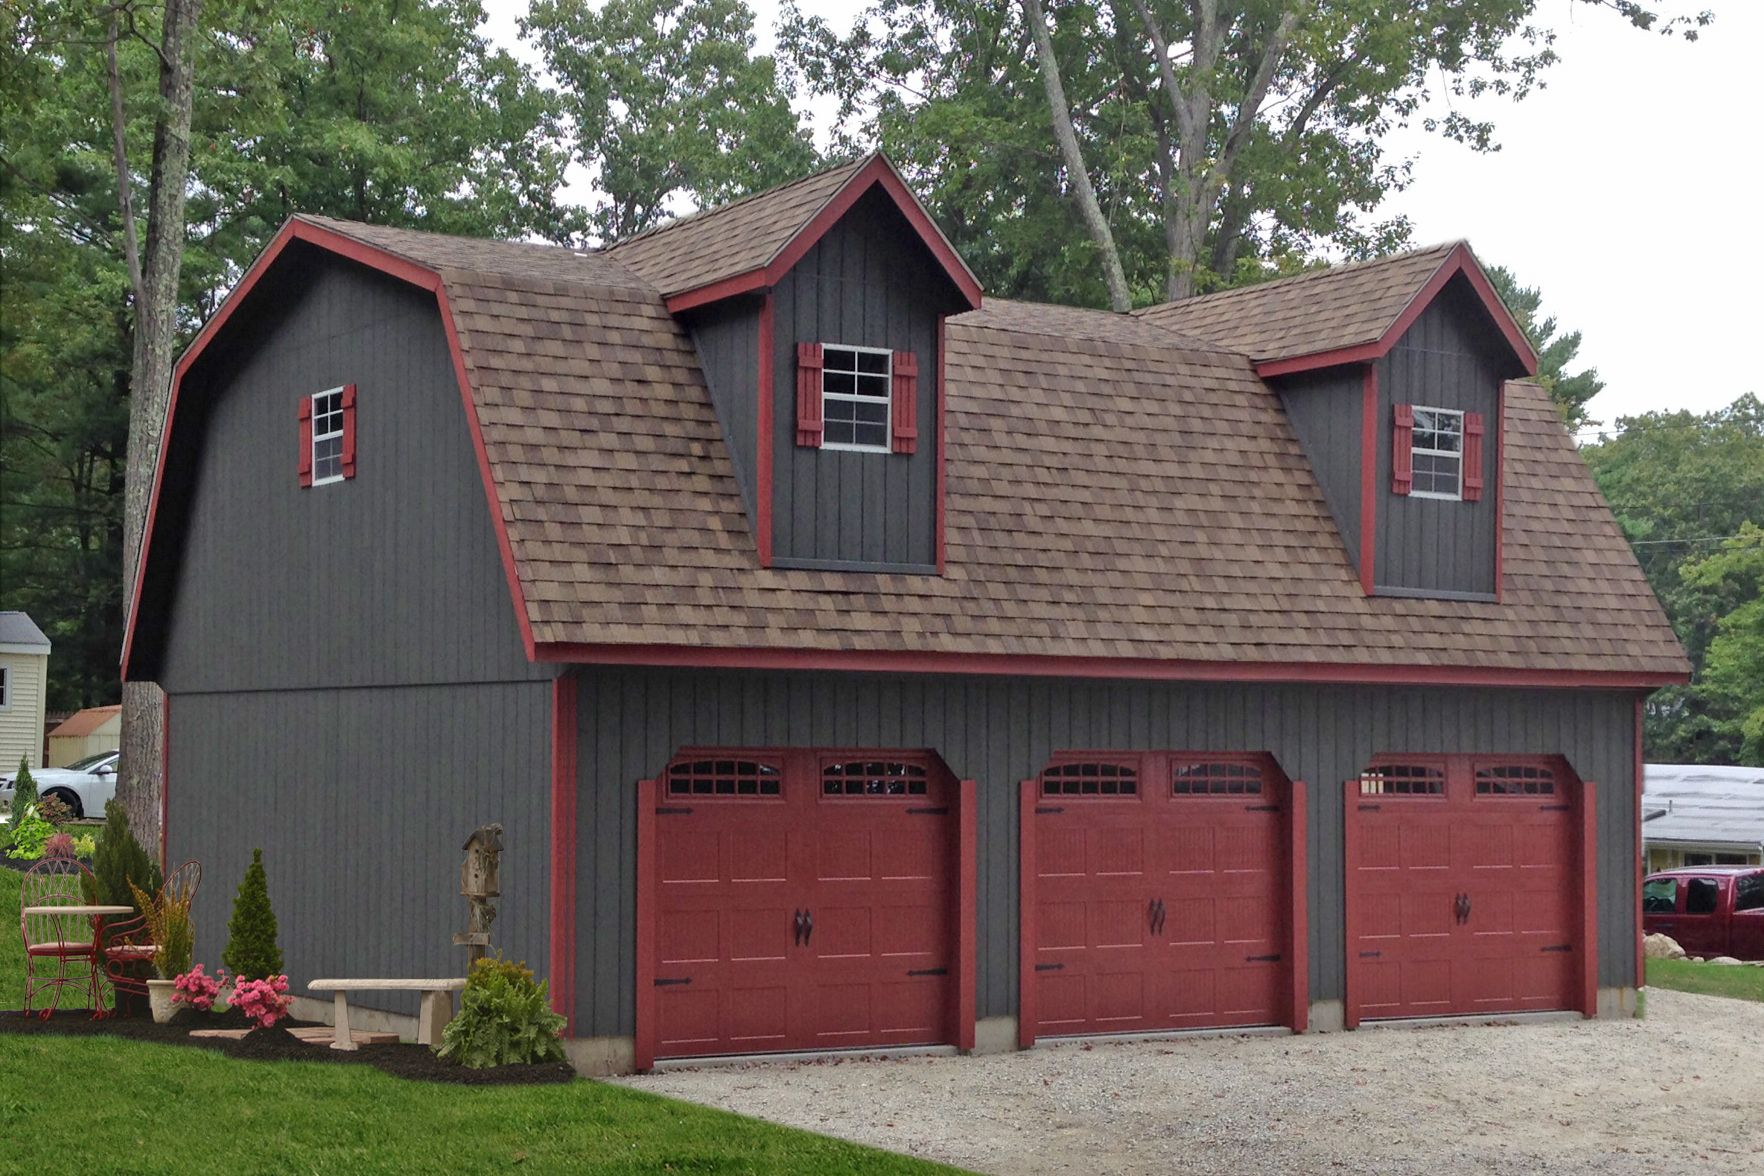 Amish Built Attic Car Garage With Loft Space: Three Car Garages For Sale